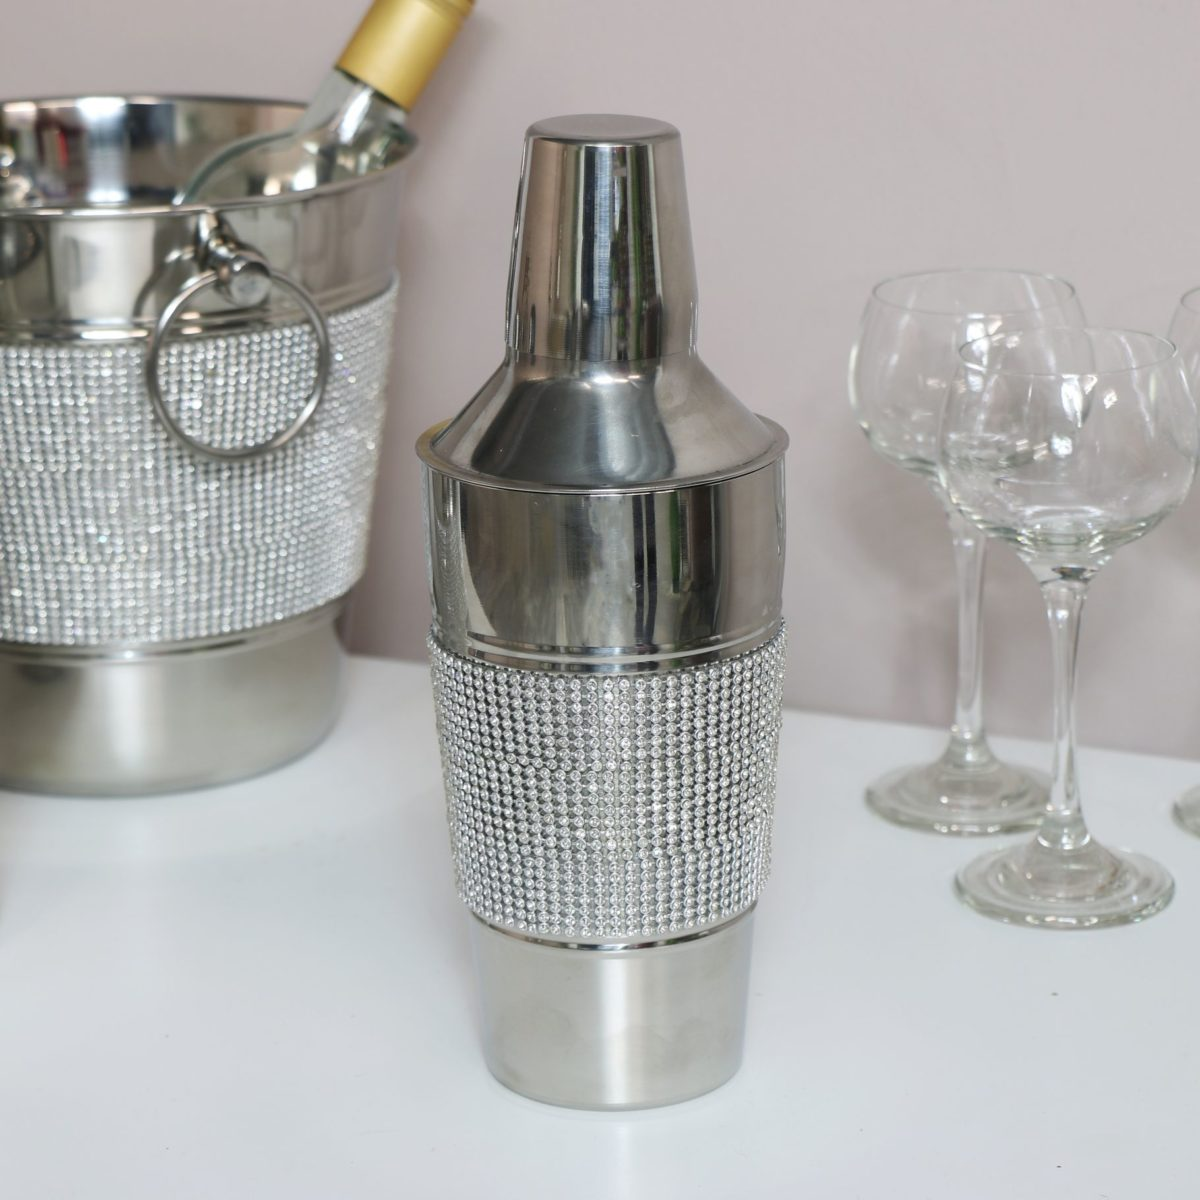 23melody-maison_stainless-steel-jewelled-cocktail-shaker-1200x1200.jpg